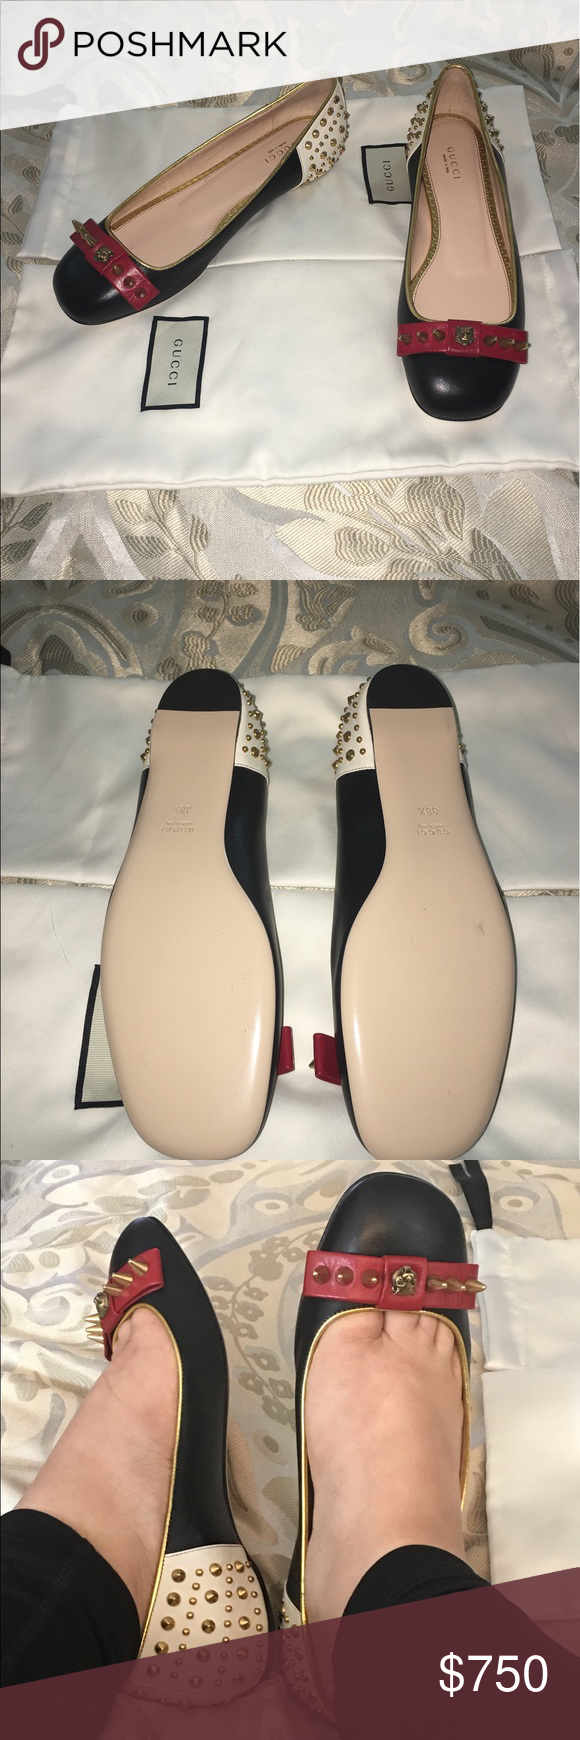 2e8e0b98b Gucci Lexi studded ballet flats Original gucci flats these are brand new  shoes i only tried